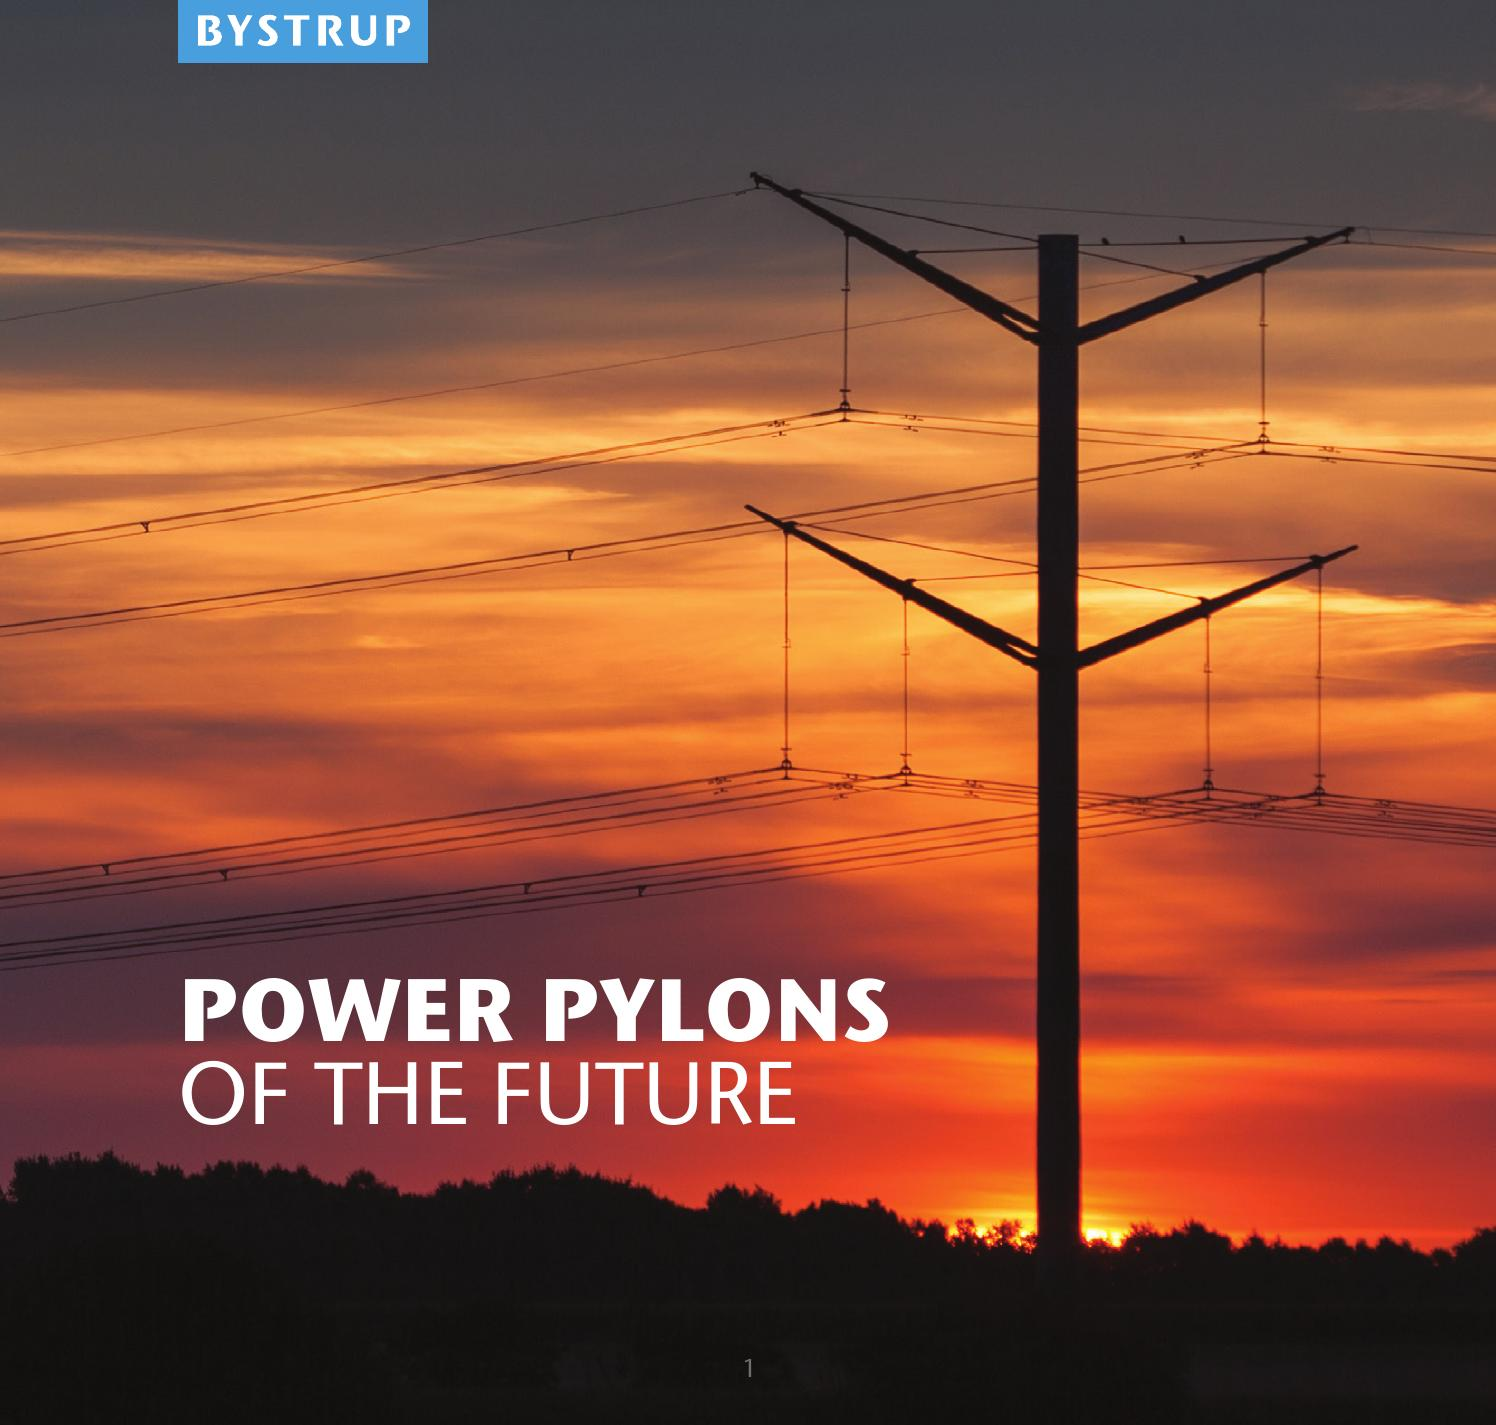 power pylons of the future 3rd edition by bystrup issuu